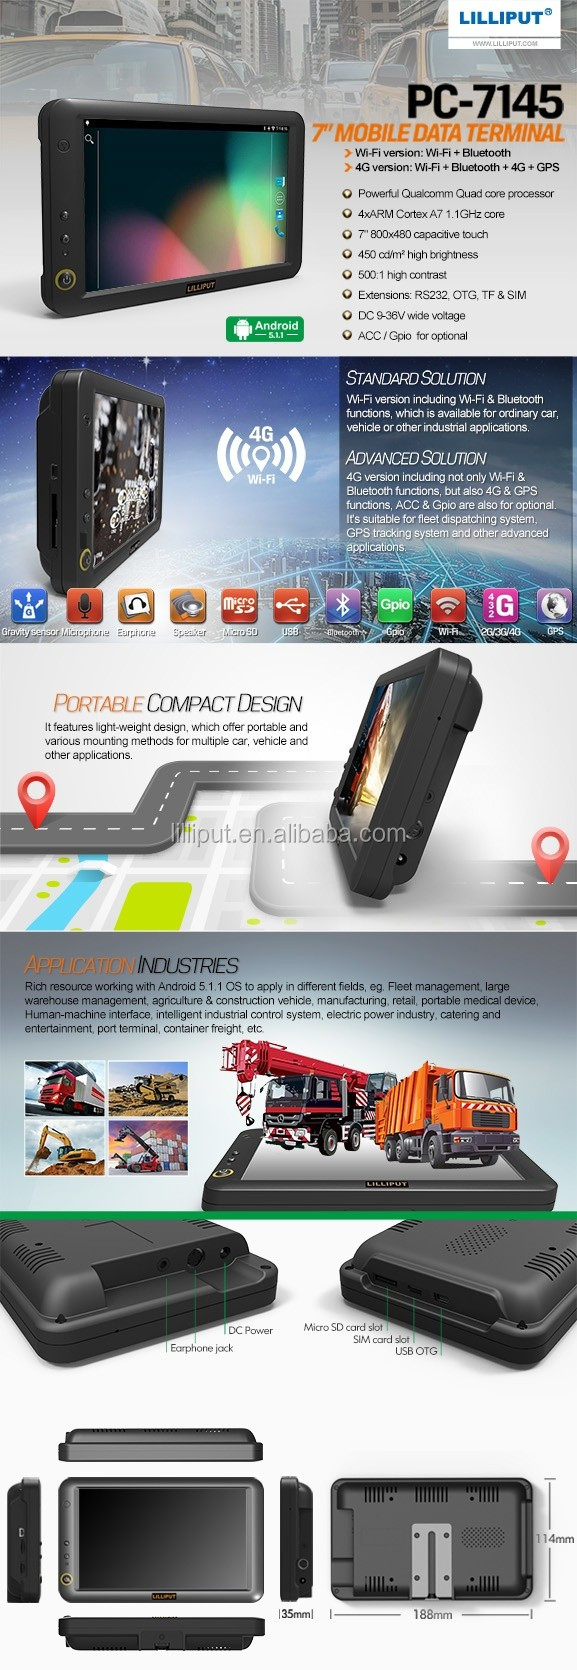 "Lilliput 7"" Rugged tablet PC with Android 5.1.1 OS to apply in Fleet management, Industrial Control,Agricultural machinery"